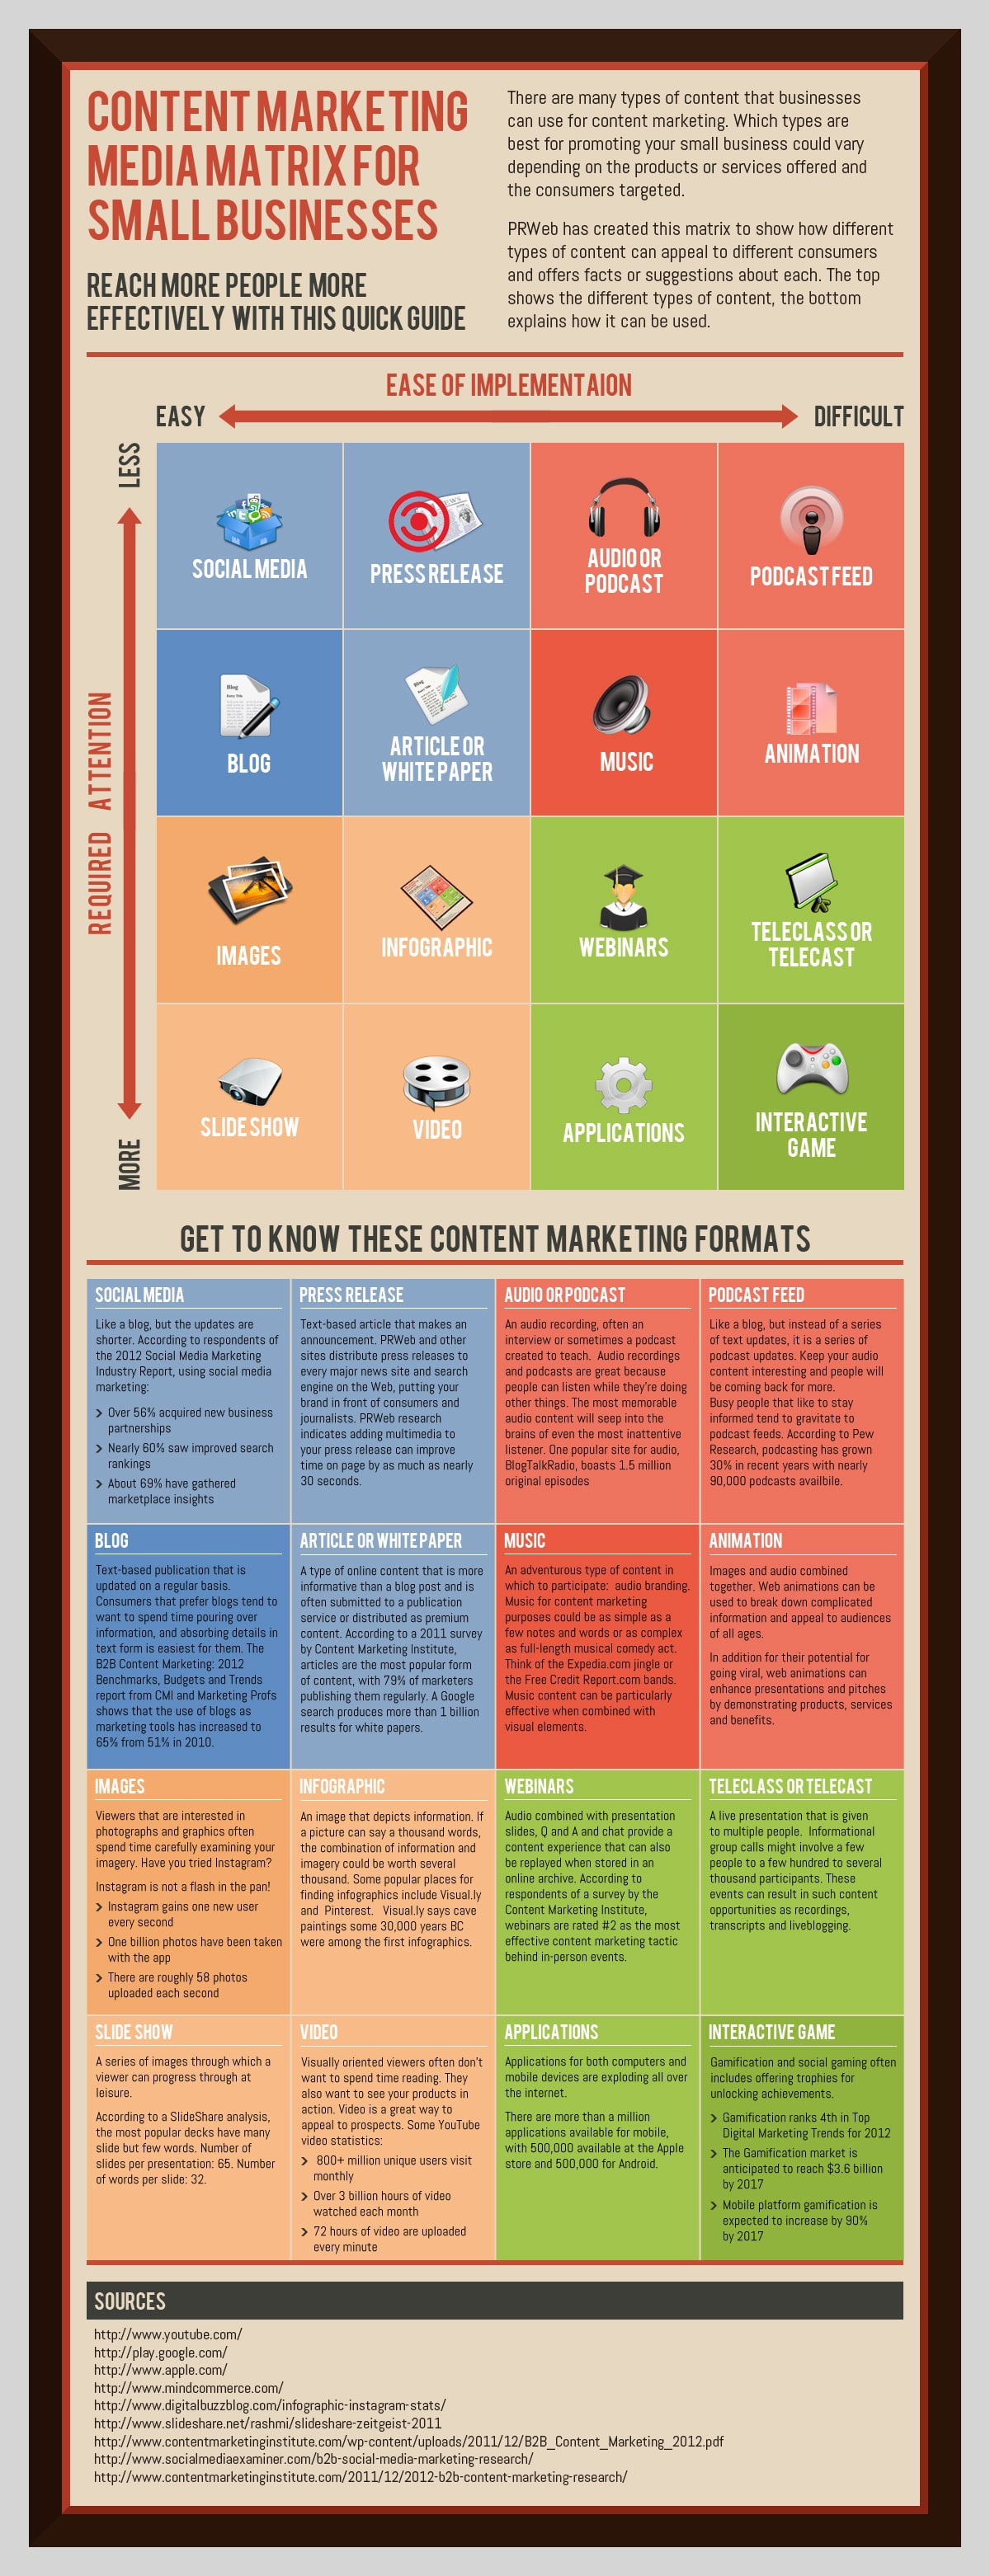 Marketing Content Media Guide For Small Businesses [Infographic]